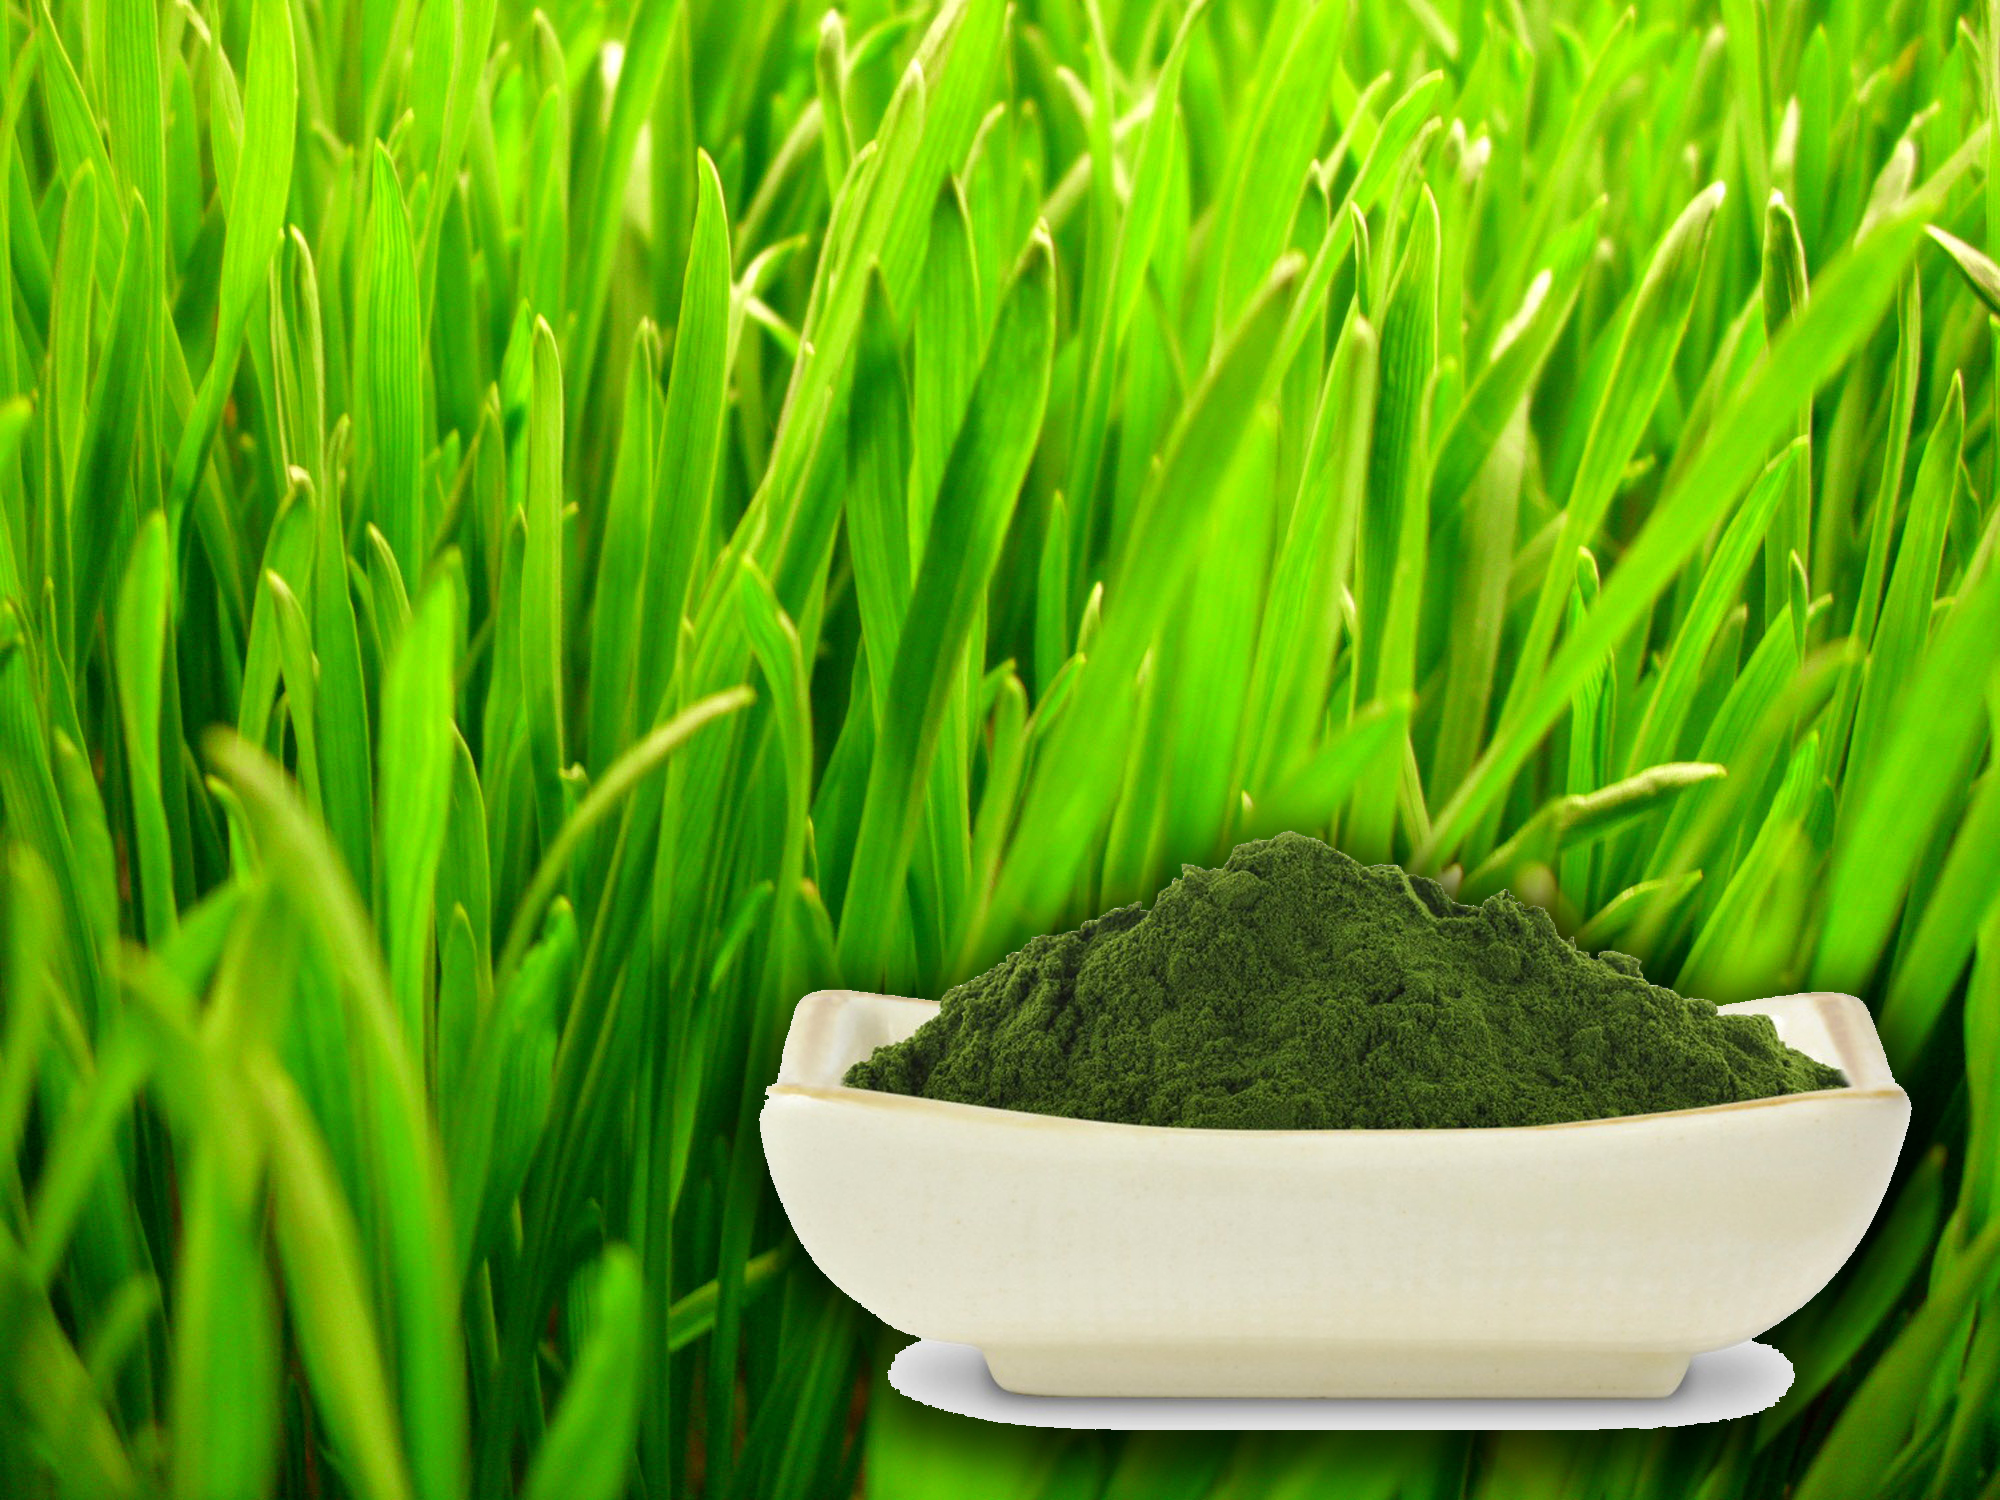 Búzafű kivonat por (Wheat Grass Extract)